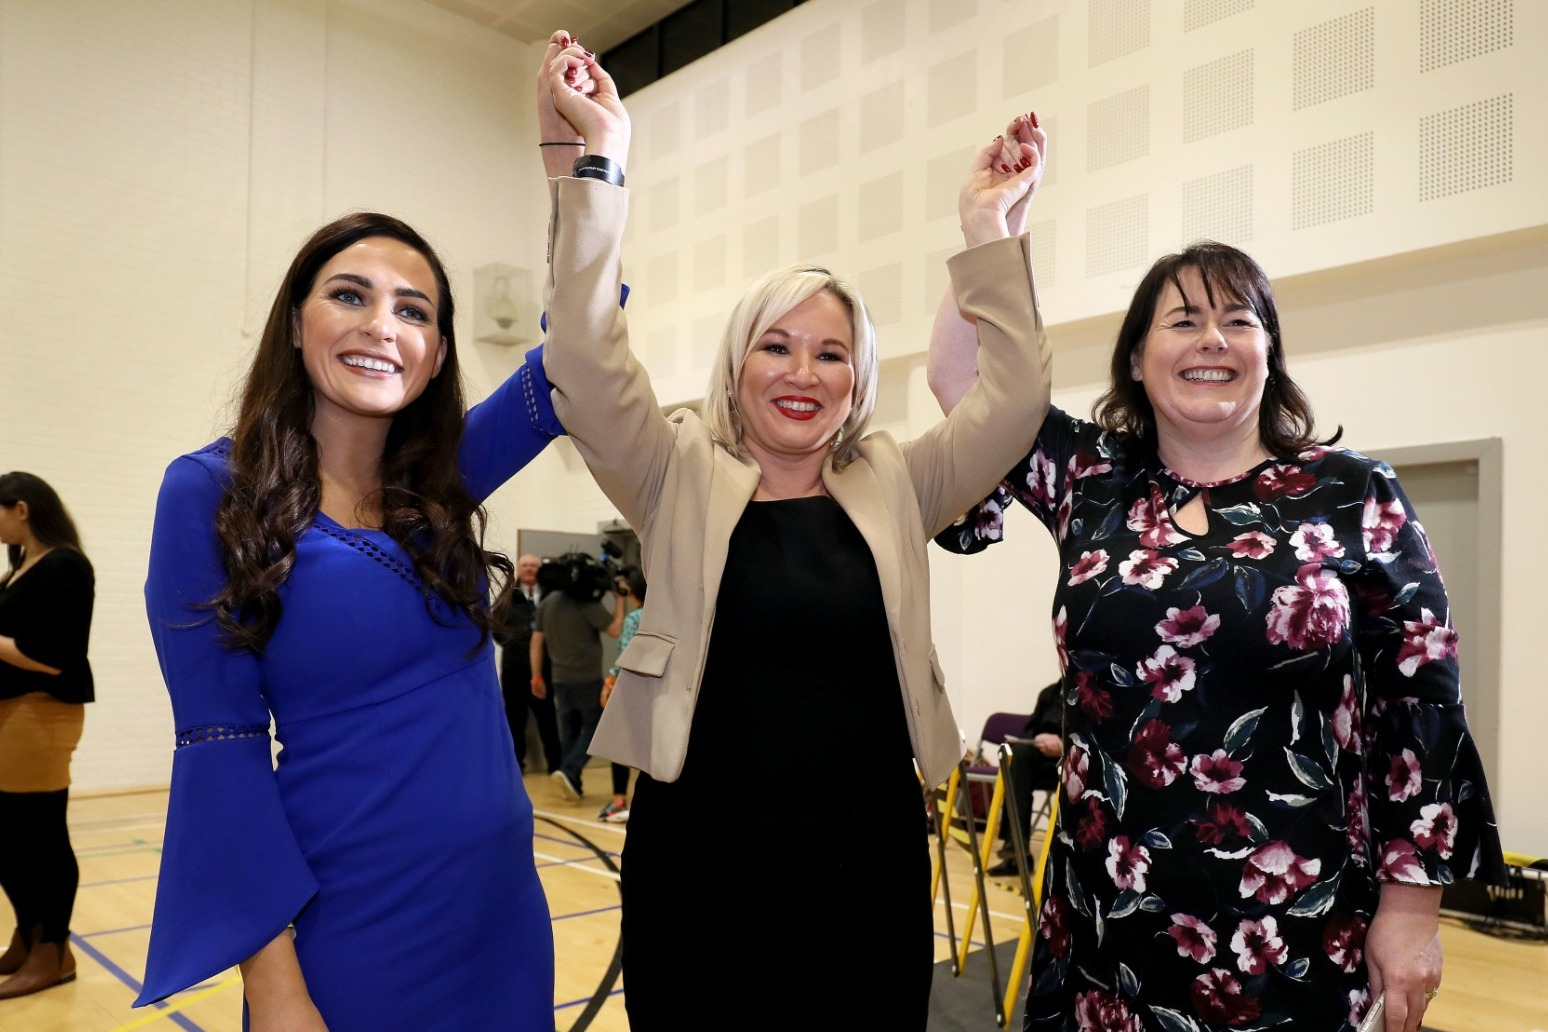 NIGHT OF DEFEATS FOR DUP AS DEPUTY LEADER NIGEL DODDS LOSES BELFAST NORTH SEAT